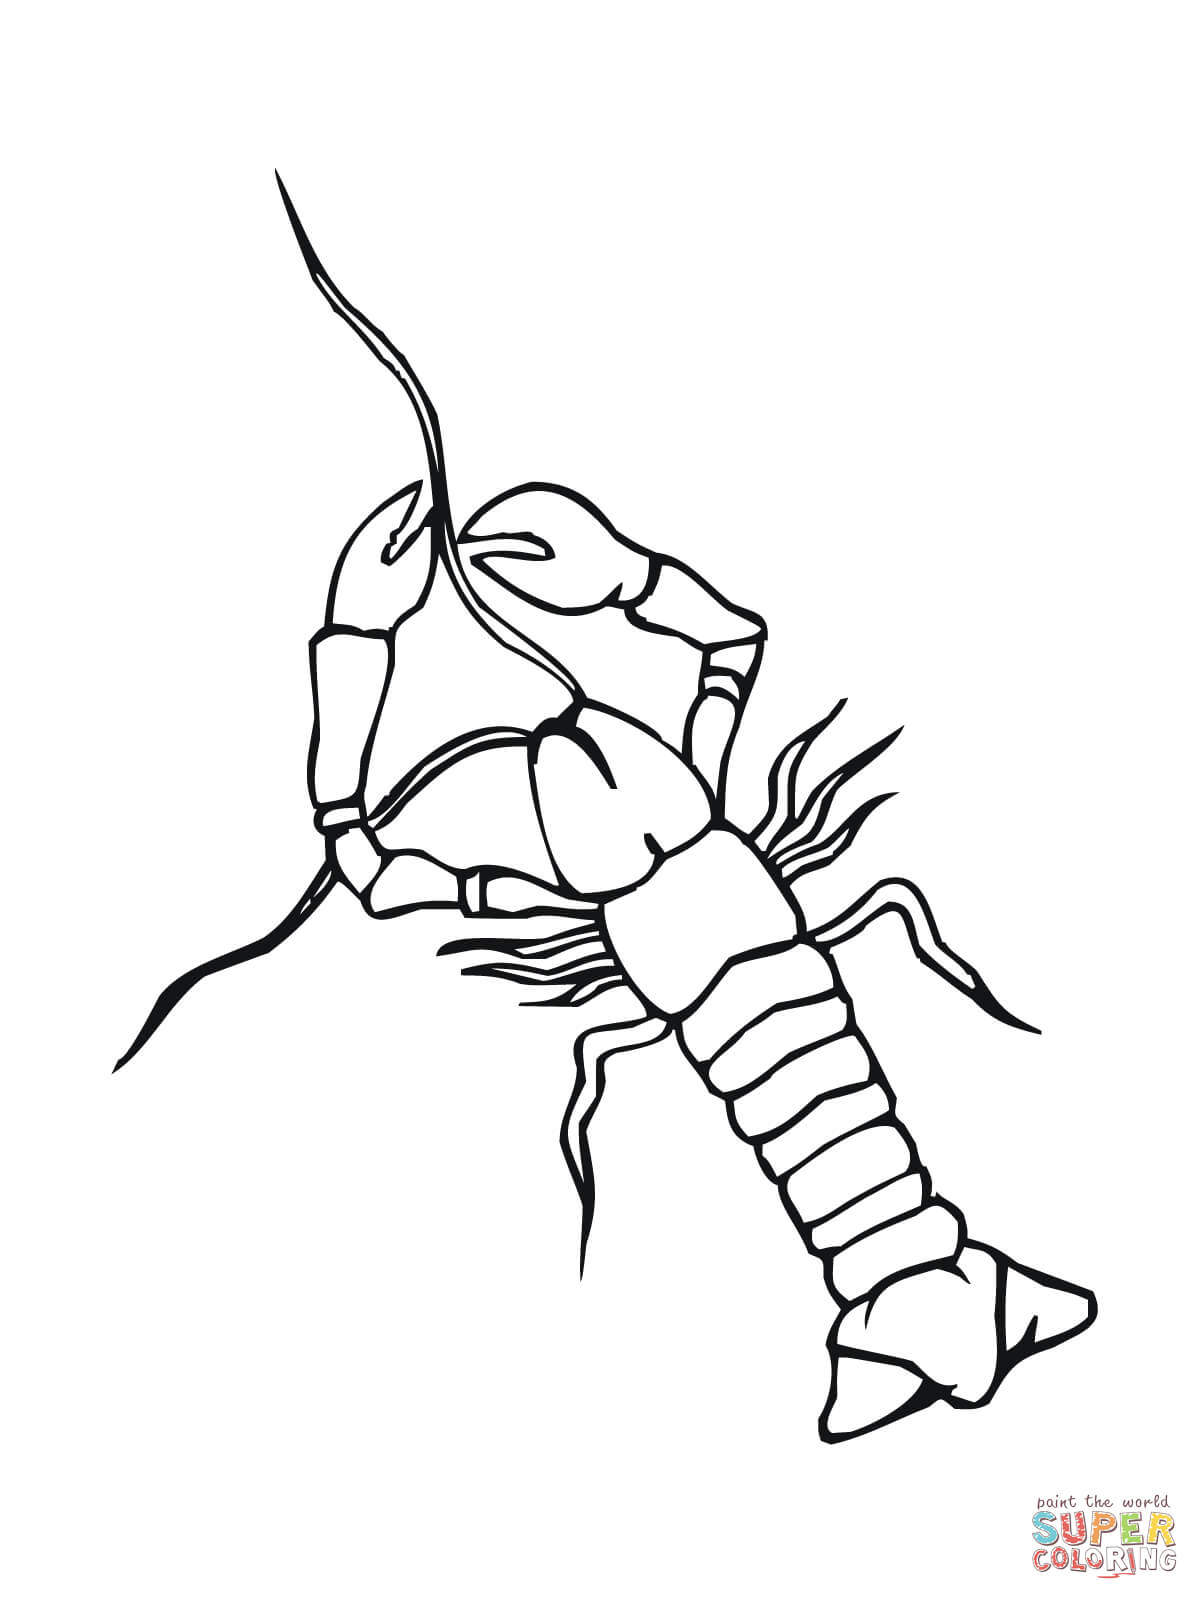 Crayfish Crowfish Coloring Page